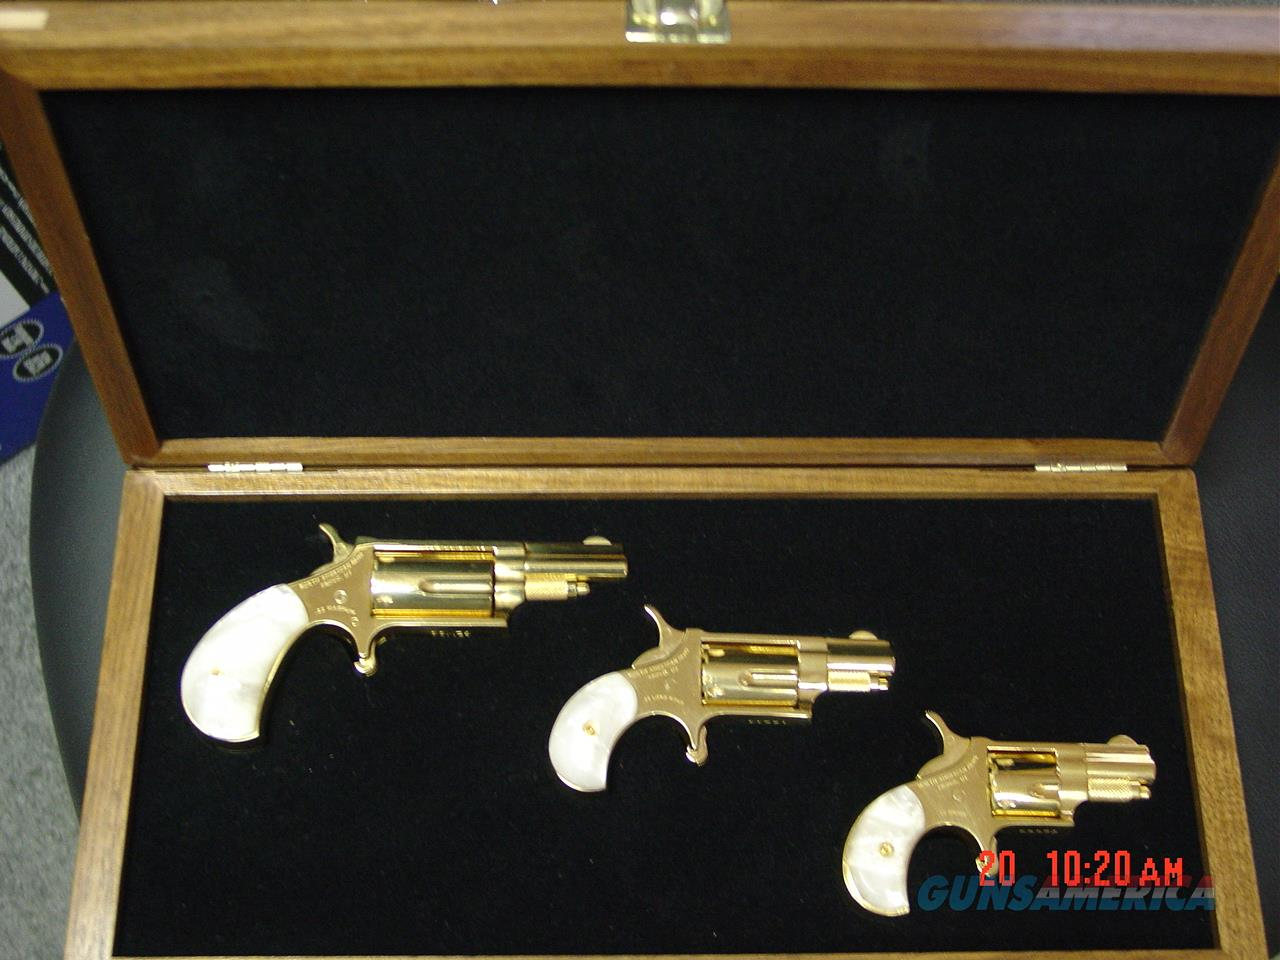 North American Arms-rare Golden Eagle 3 gun set,24K plated,in fitted case,pearlite grips,22S,22LR,22Mag,matching serial #s,much nicer in person- never seen one before !!  Guns > Pistols > North American Arms Pistols